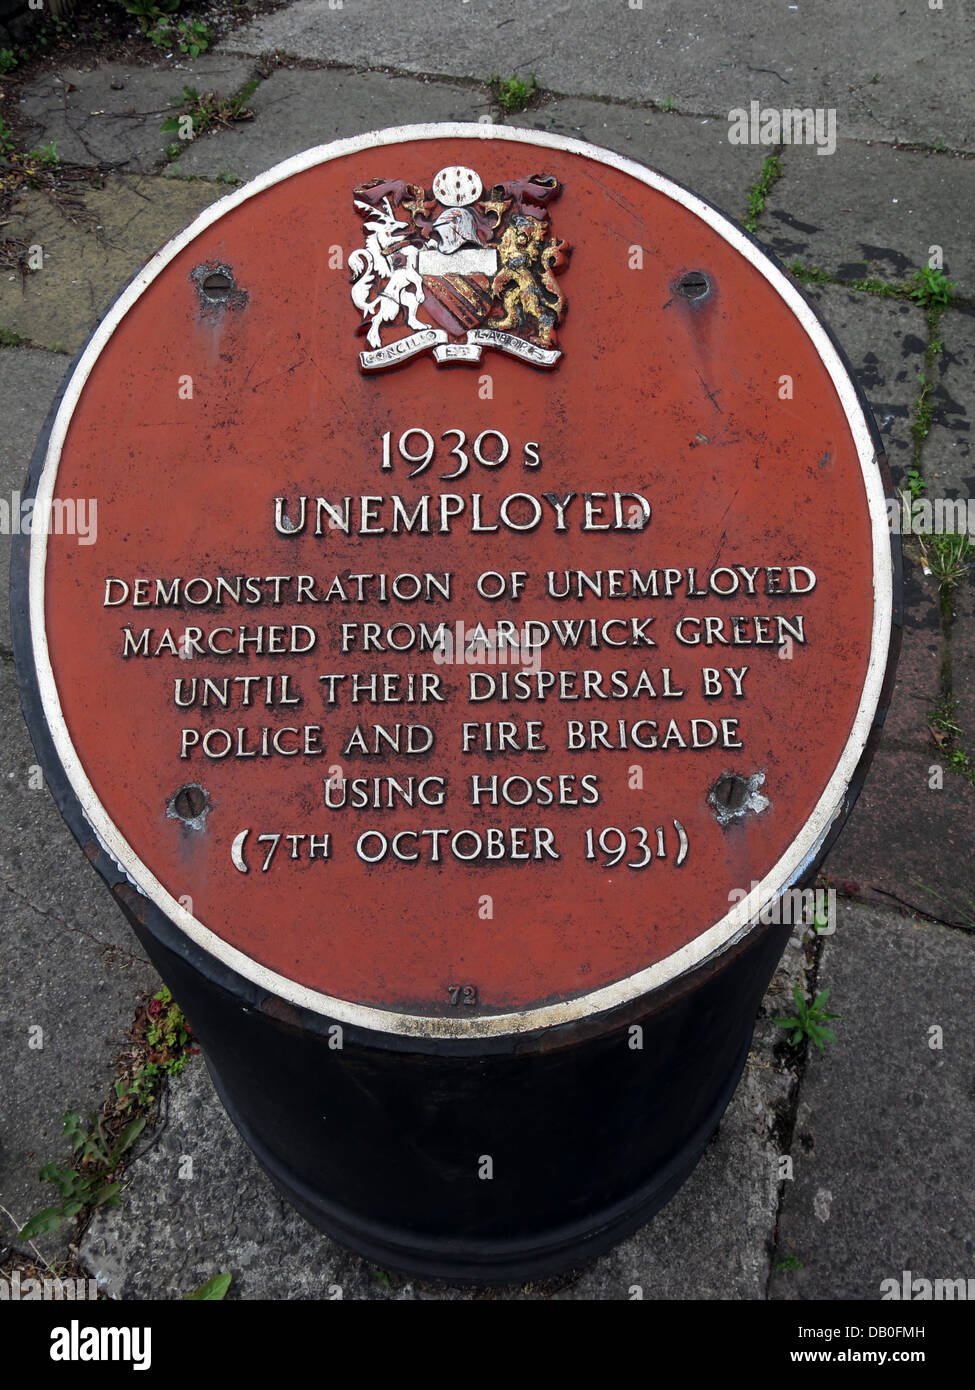 Manchester,Council,corporation,Demonstration,of,unemployed,marched,from,Ardwick,Green,labour,root,roots,until,dispersal,by,police,and,fire,brigade,using,horses,07/10/31,07/10/1931,1931,7th,oct,october,England,GB,great,Britain,depression,located,near,piccadilly,main,line,mainline,railway,station,gotonysmith,BR,london,rd,road,history,historic,peterloo,massacre,civil,unrest,in,city,cities,30,30s,1930,portrait,memorial,TUC,socialism,socialists,politics,political,Mancester,Buy Pictures of,Buy Images Of